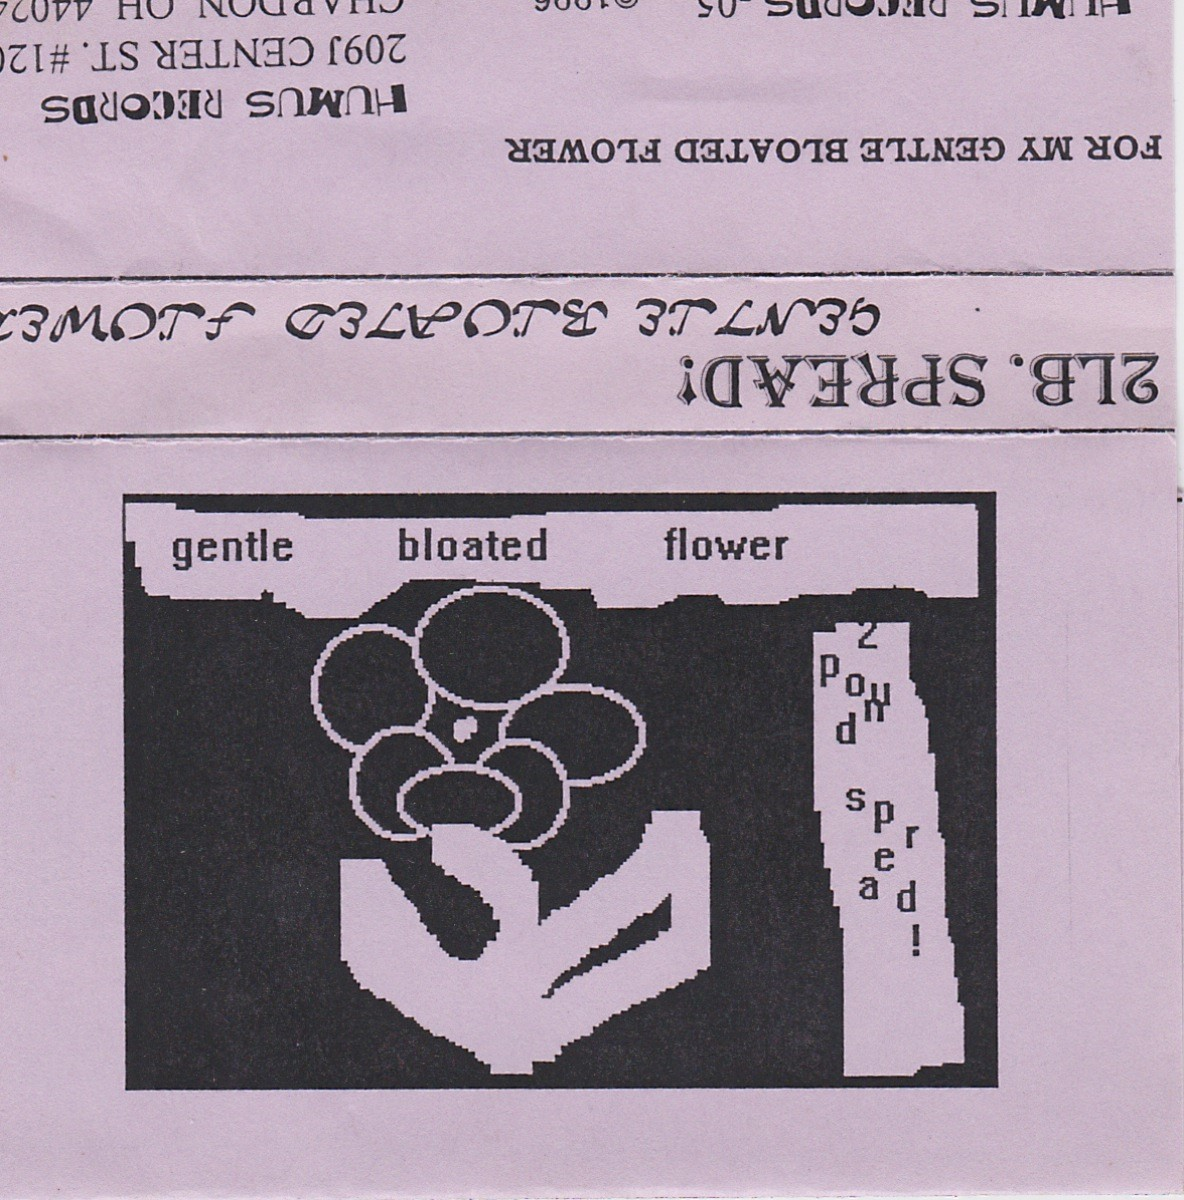 2Lb. Spread!, Gentle Bloated Flower, 1996